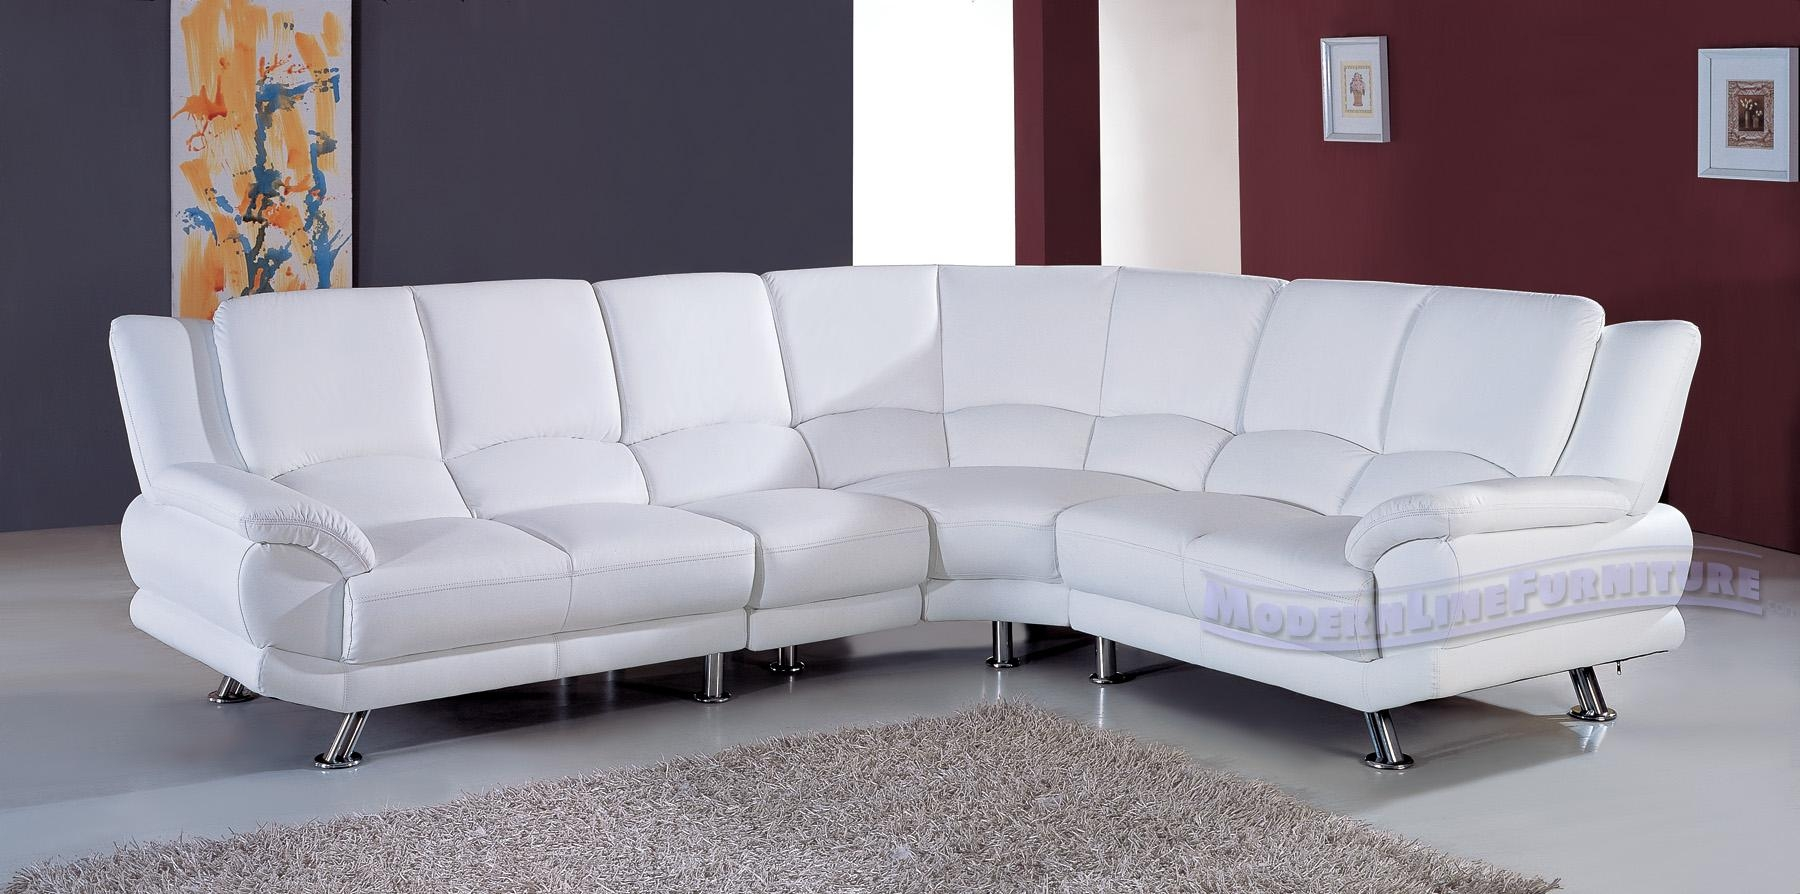 White Sectional Leather Sofa Modern And At In Elegant White Sofas Intended For White Sectional Sofa For Sale (Image 20 of 21)